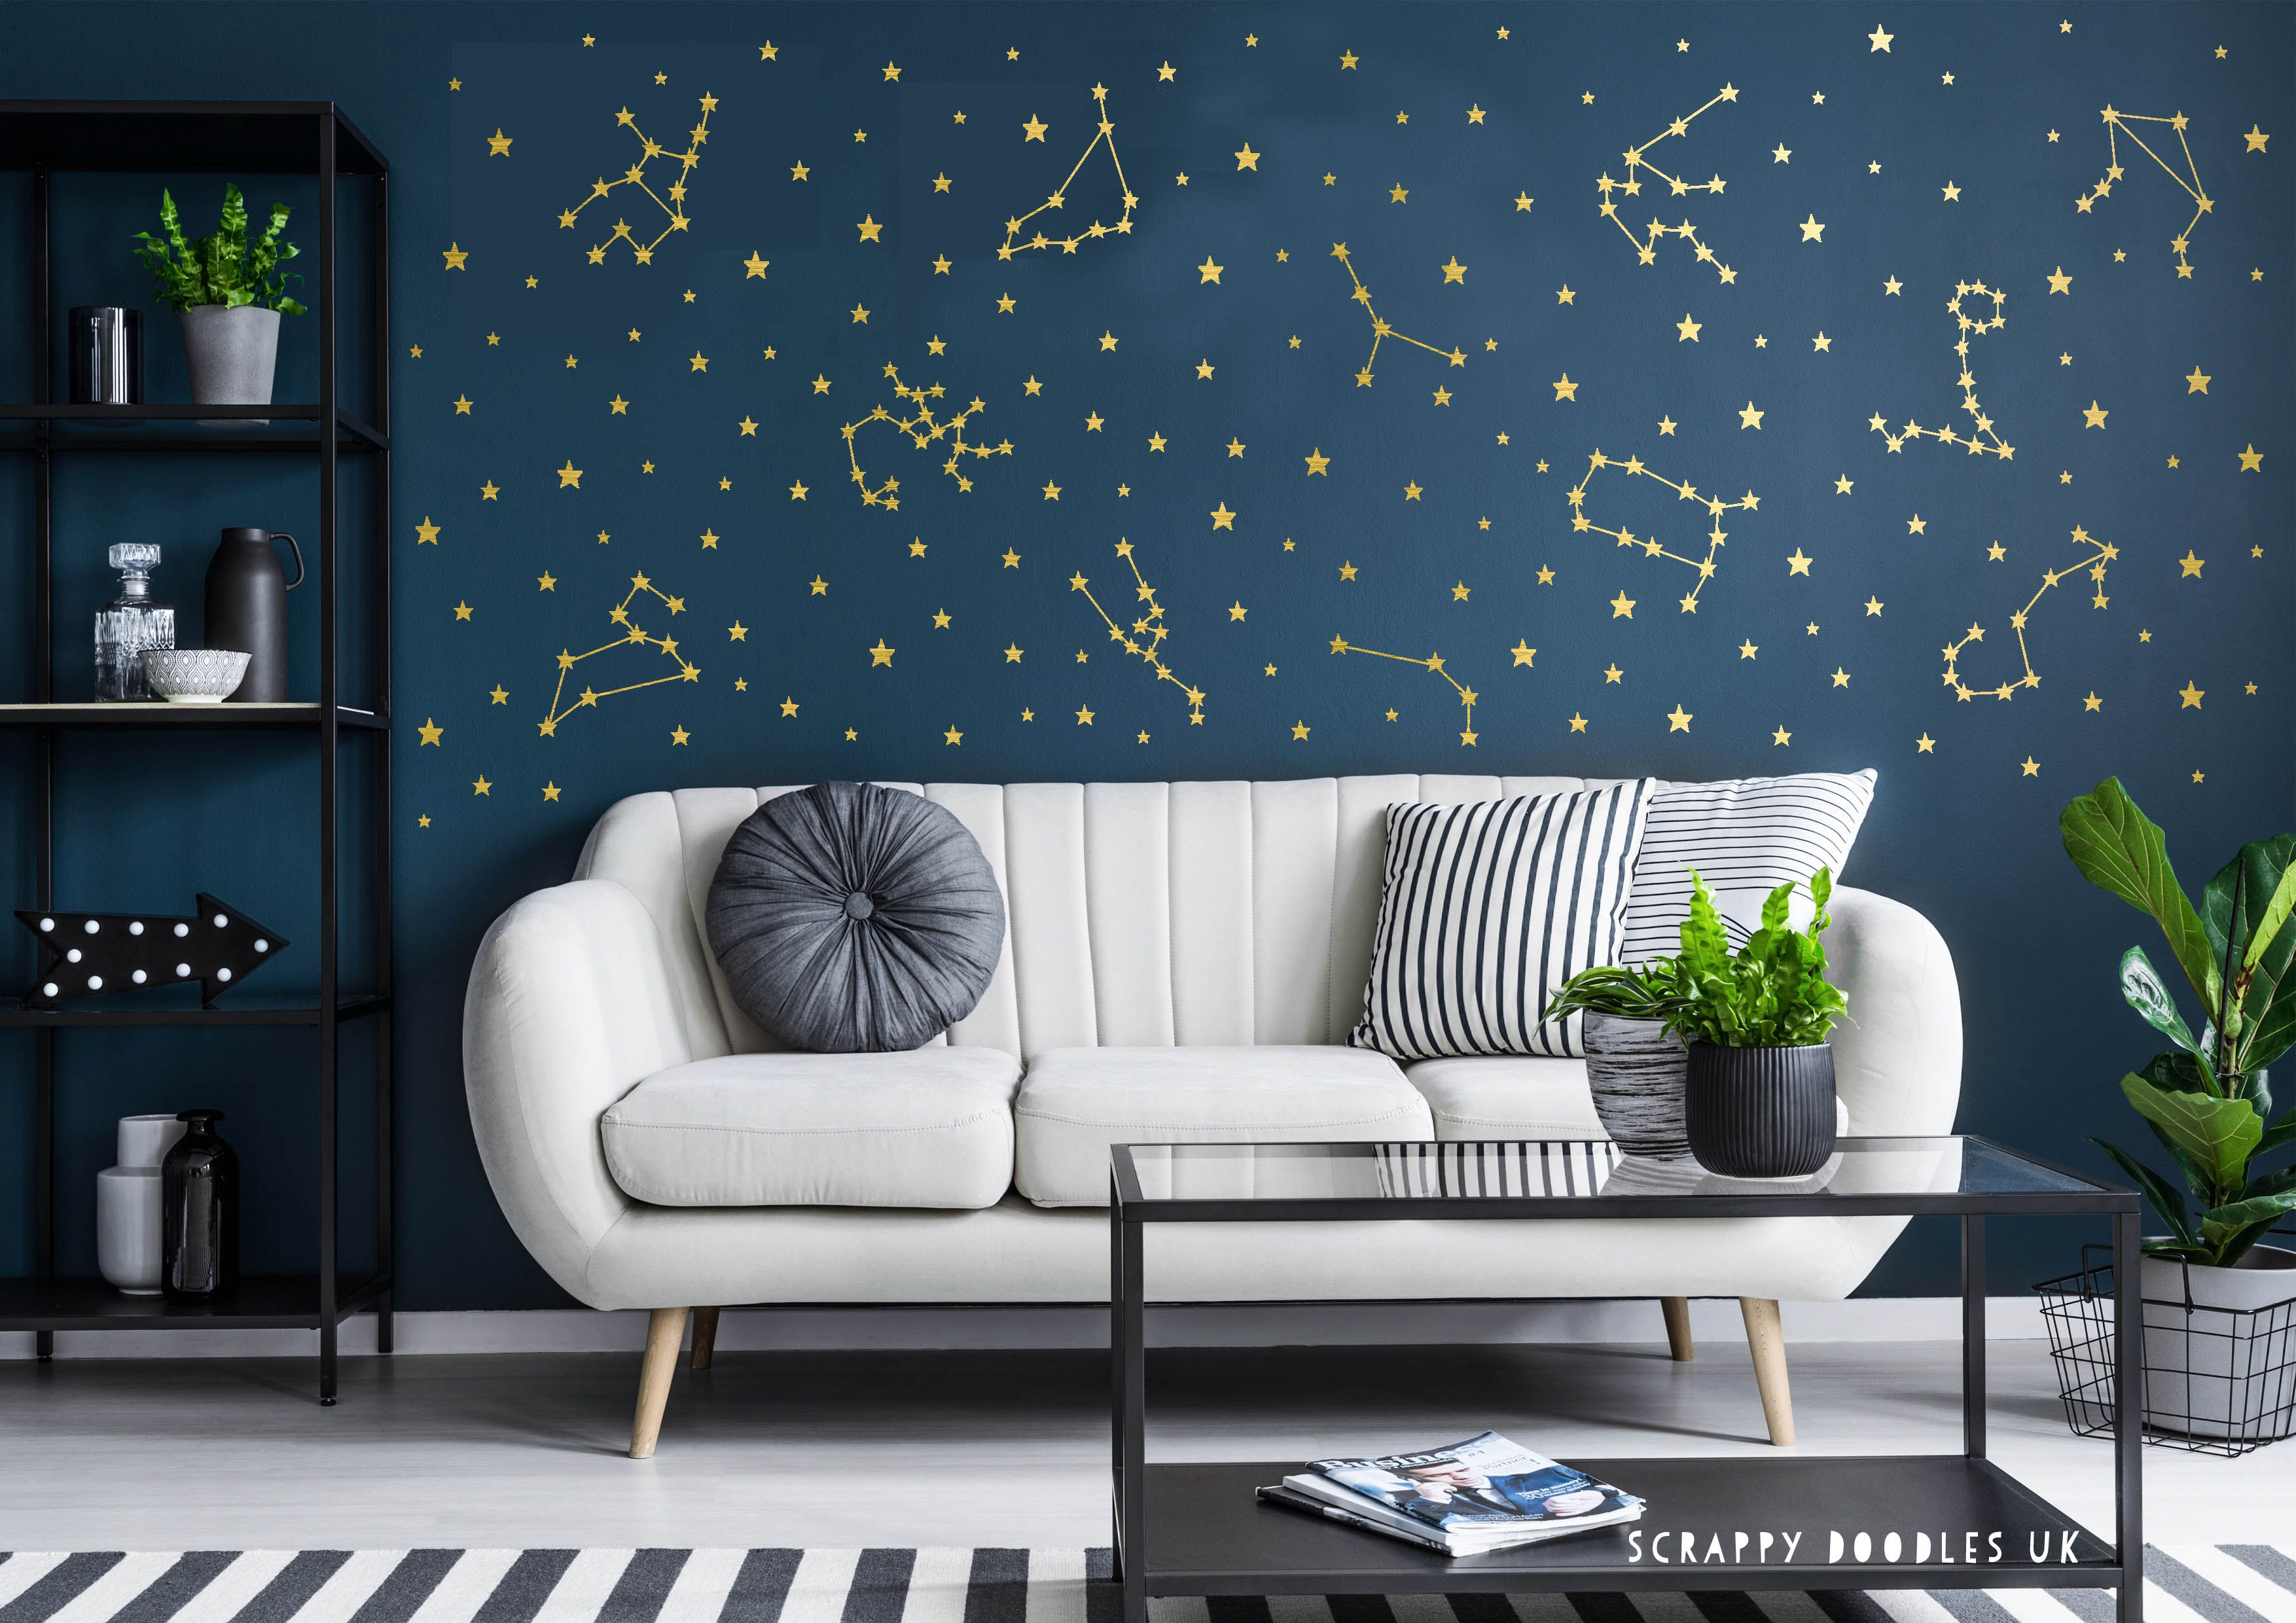 Star Constellation Wall Decal Vinyl Stickers Colour Options Available Easy Application In 2020 Theme Room Decor Space Themed Room Constellation Wall Decal